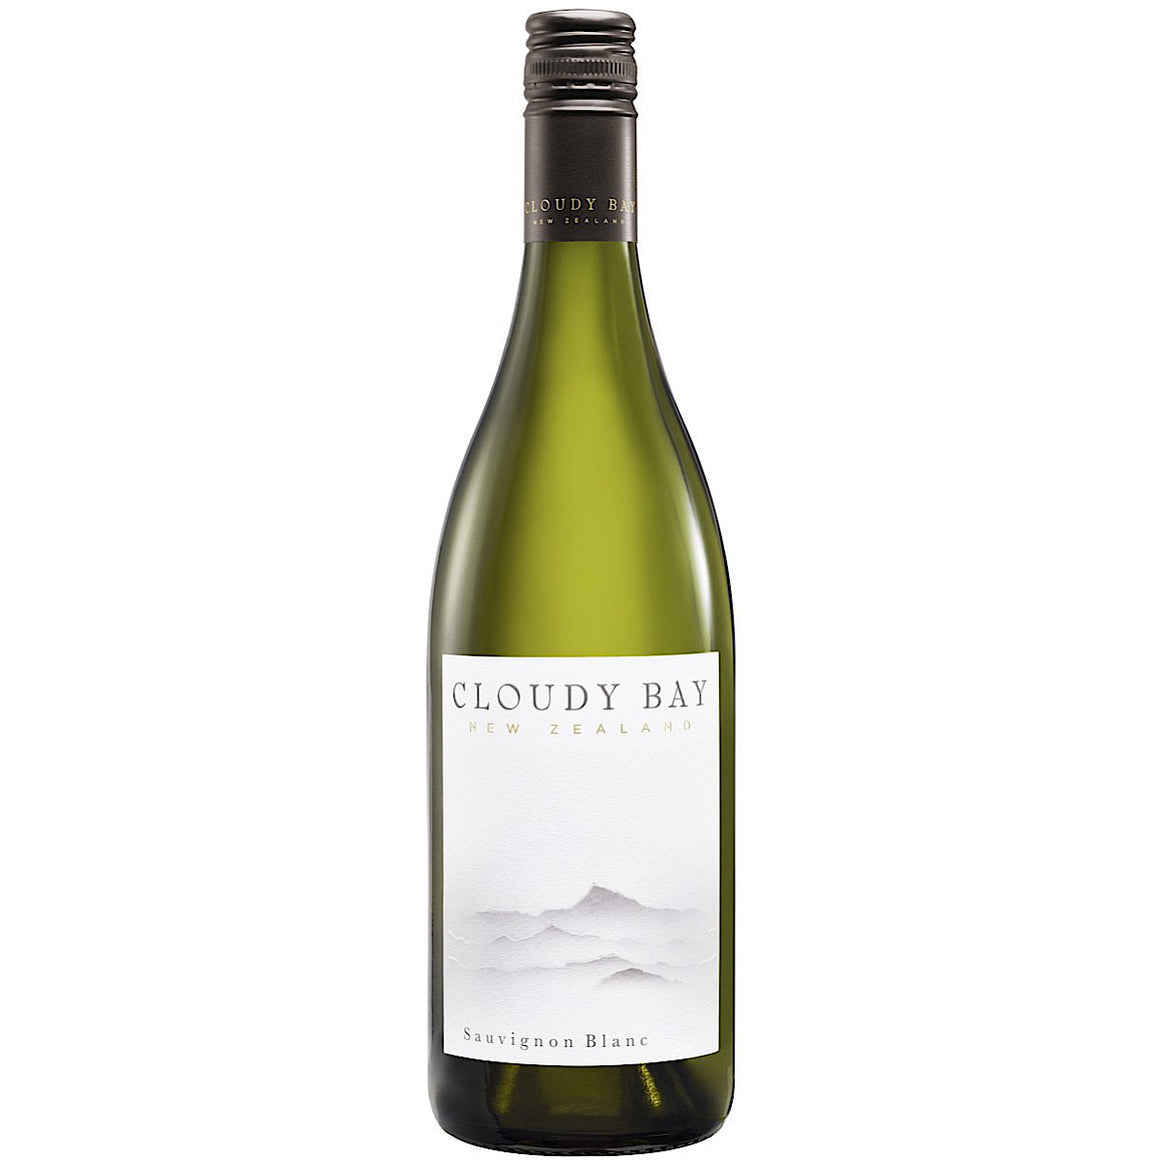 12 Cloudy Bay Sauvignon Blanc 75cl